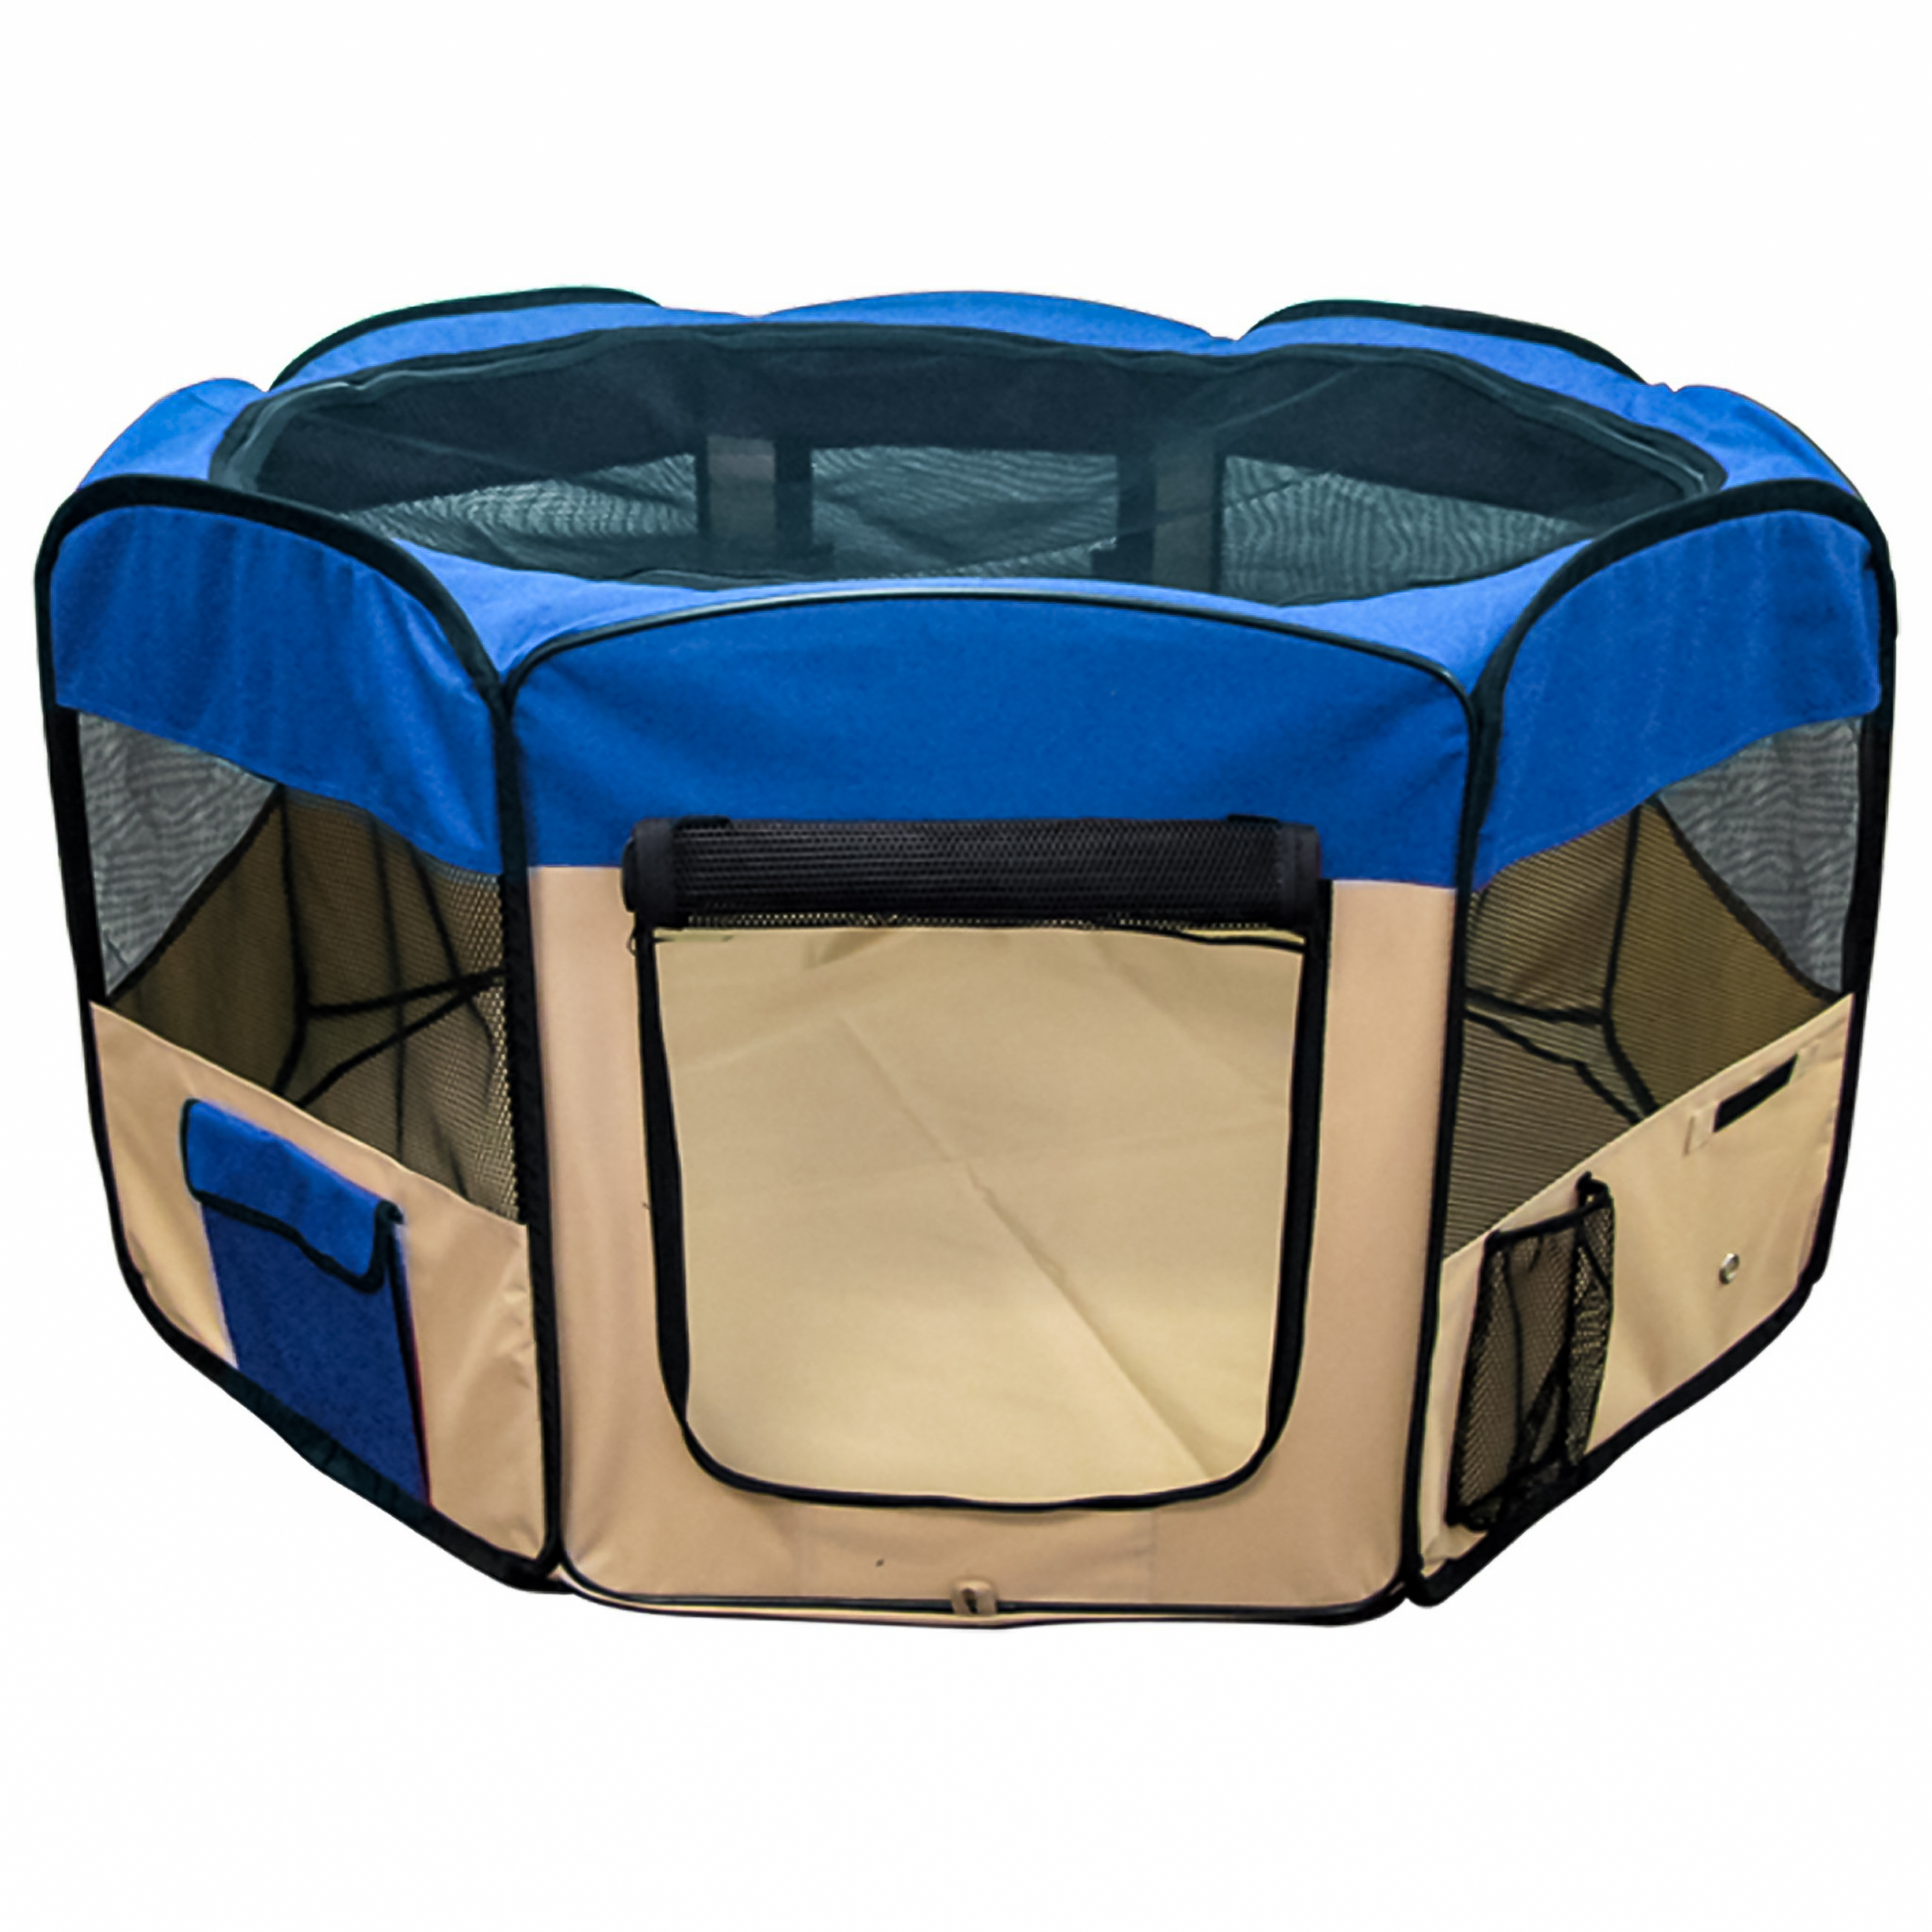 Best Choice Products 45in Cloth Pet Playpen w/ Zippered Doors, Carrying Case, Cover, Storage Bags, Folding Design - Blue